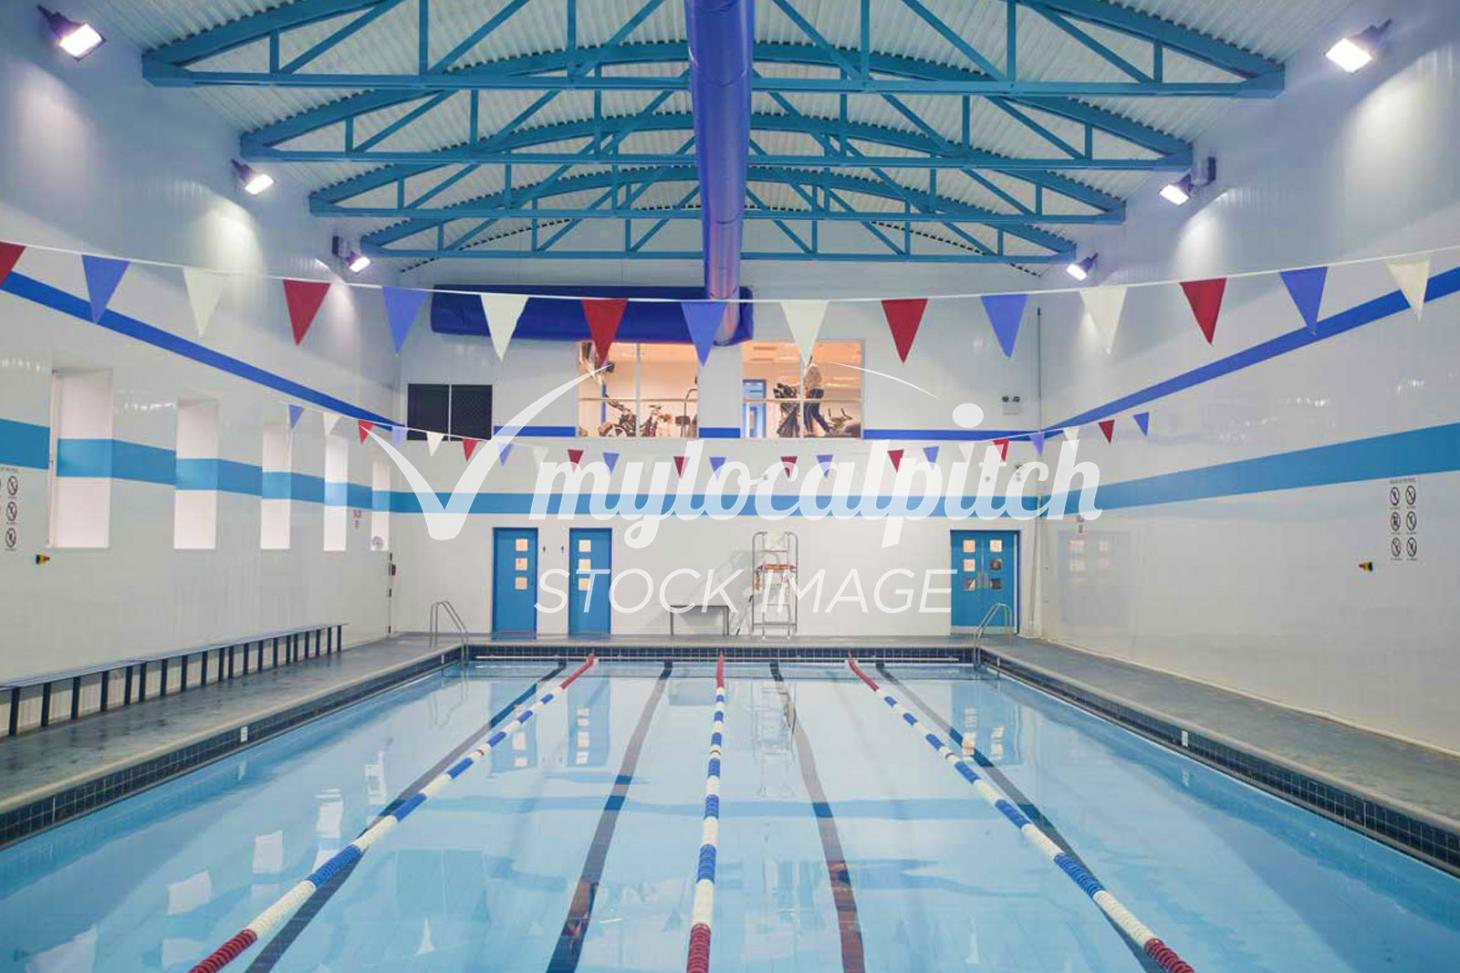 LA Fitness Southgate Indoor swimming pool